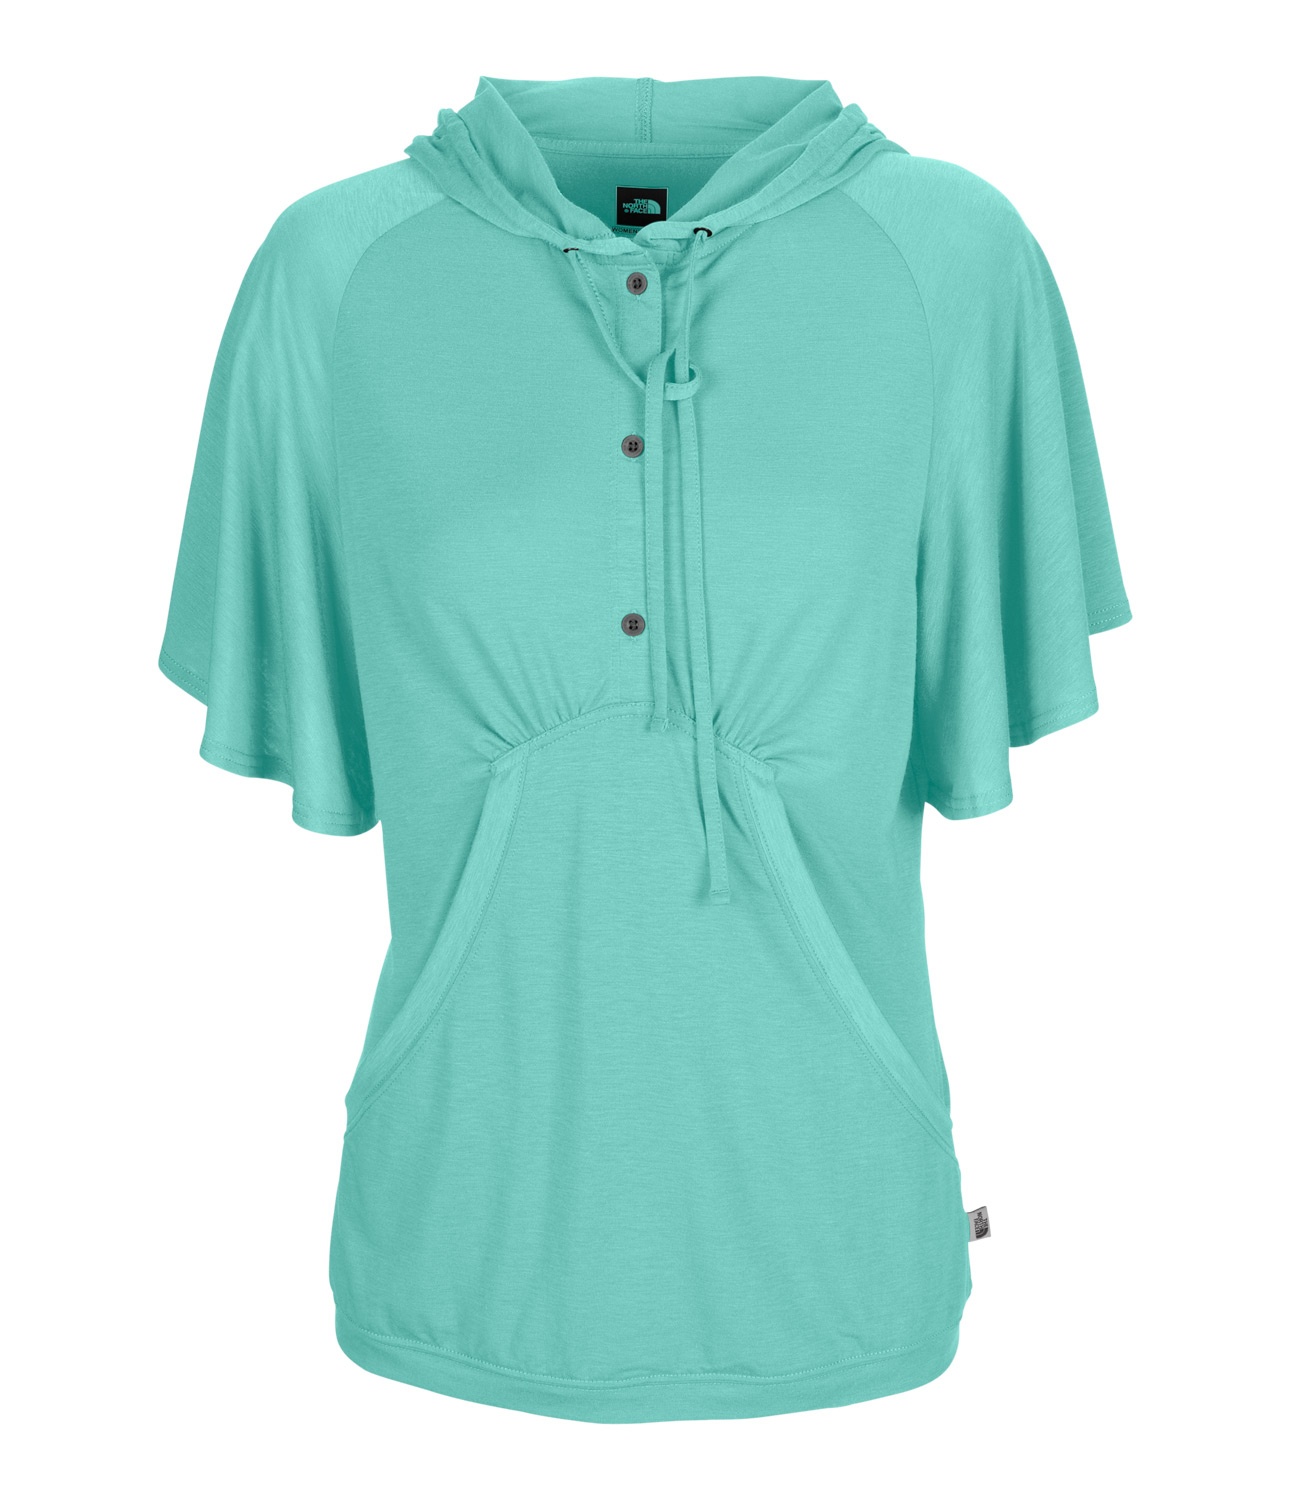 The North Face Crystal Travel Shirt Bonnie Blue - $29.95